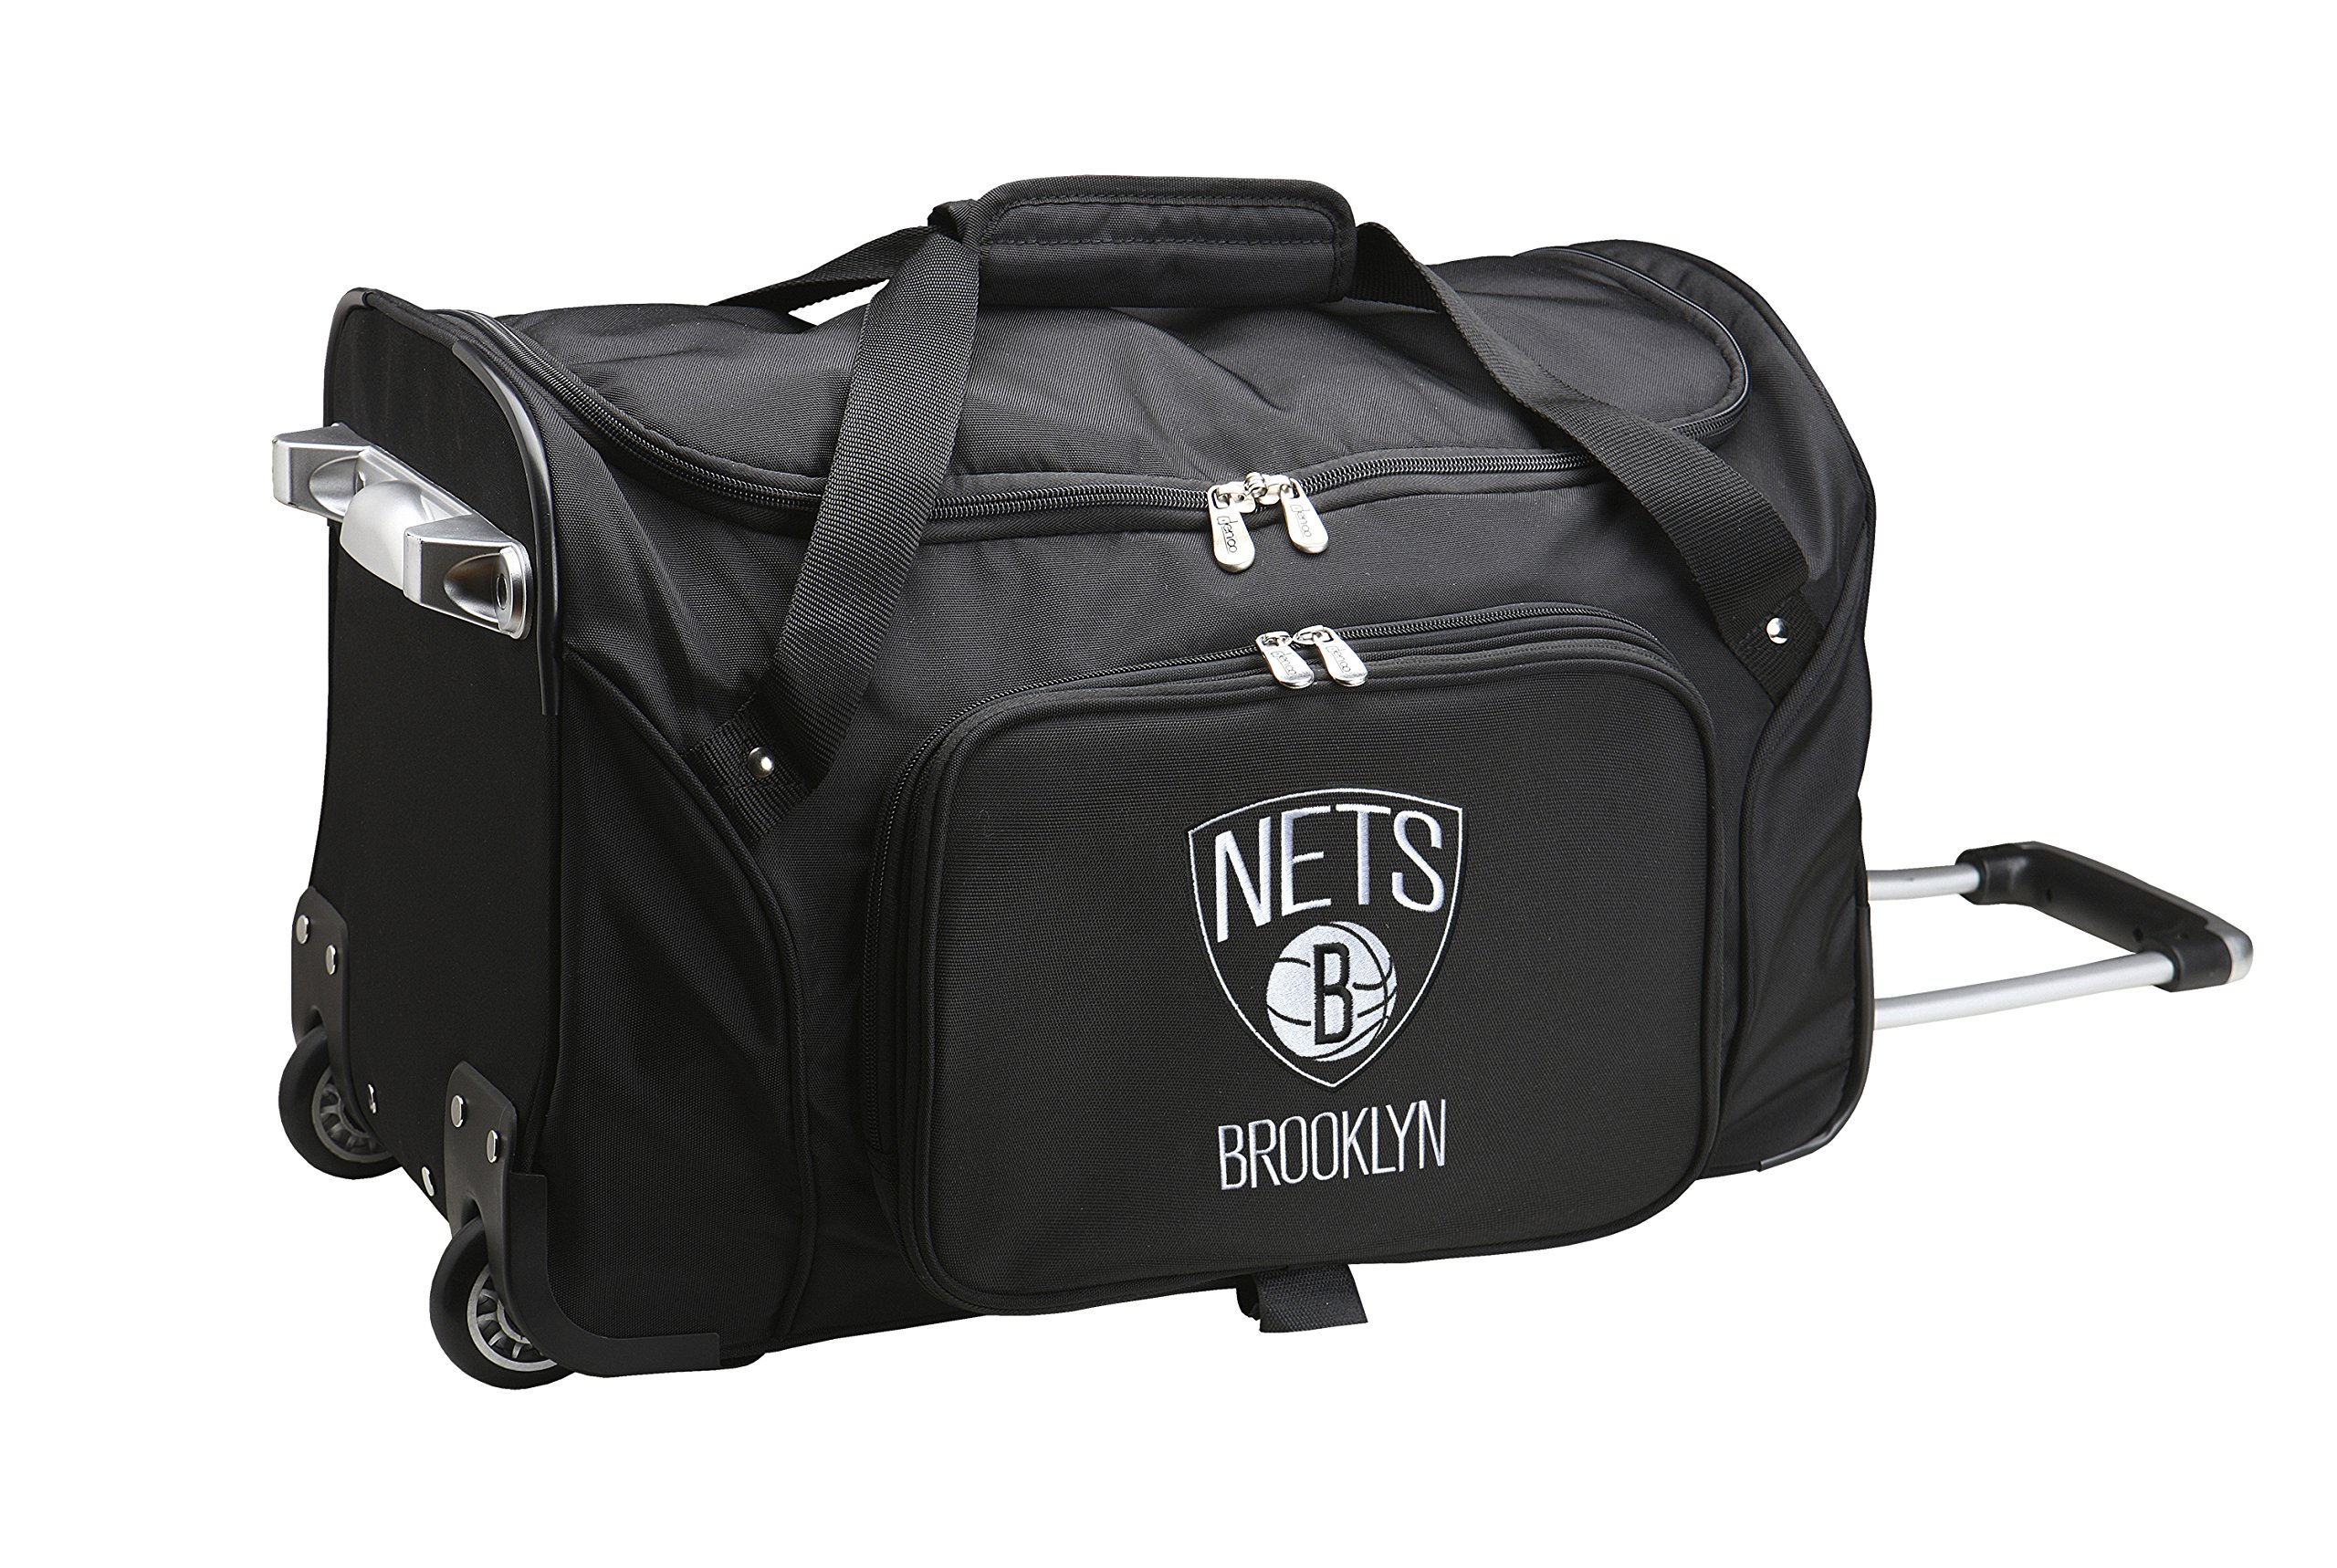 NBA Brooklyn Nets Wheeled Duffle Bag, 22 x 12 x 5.5'', Black